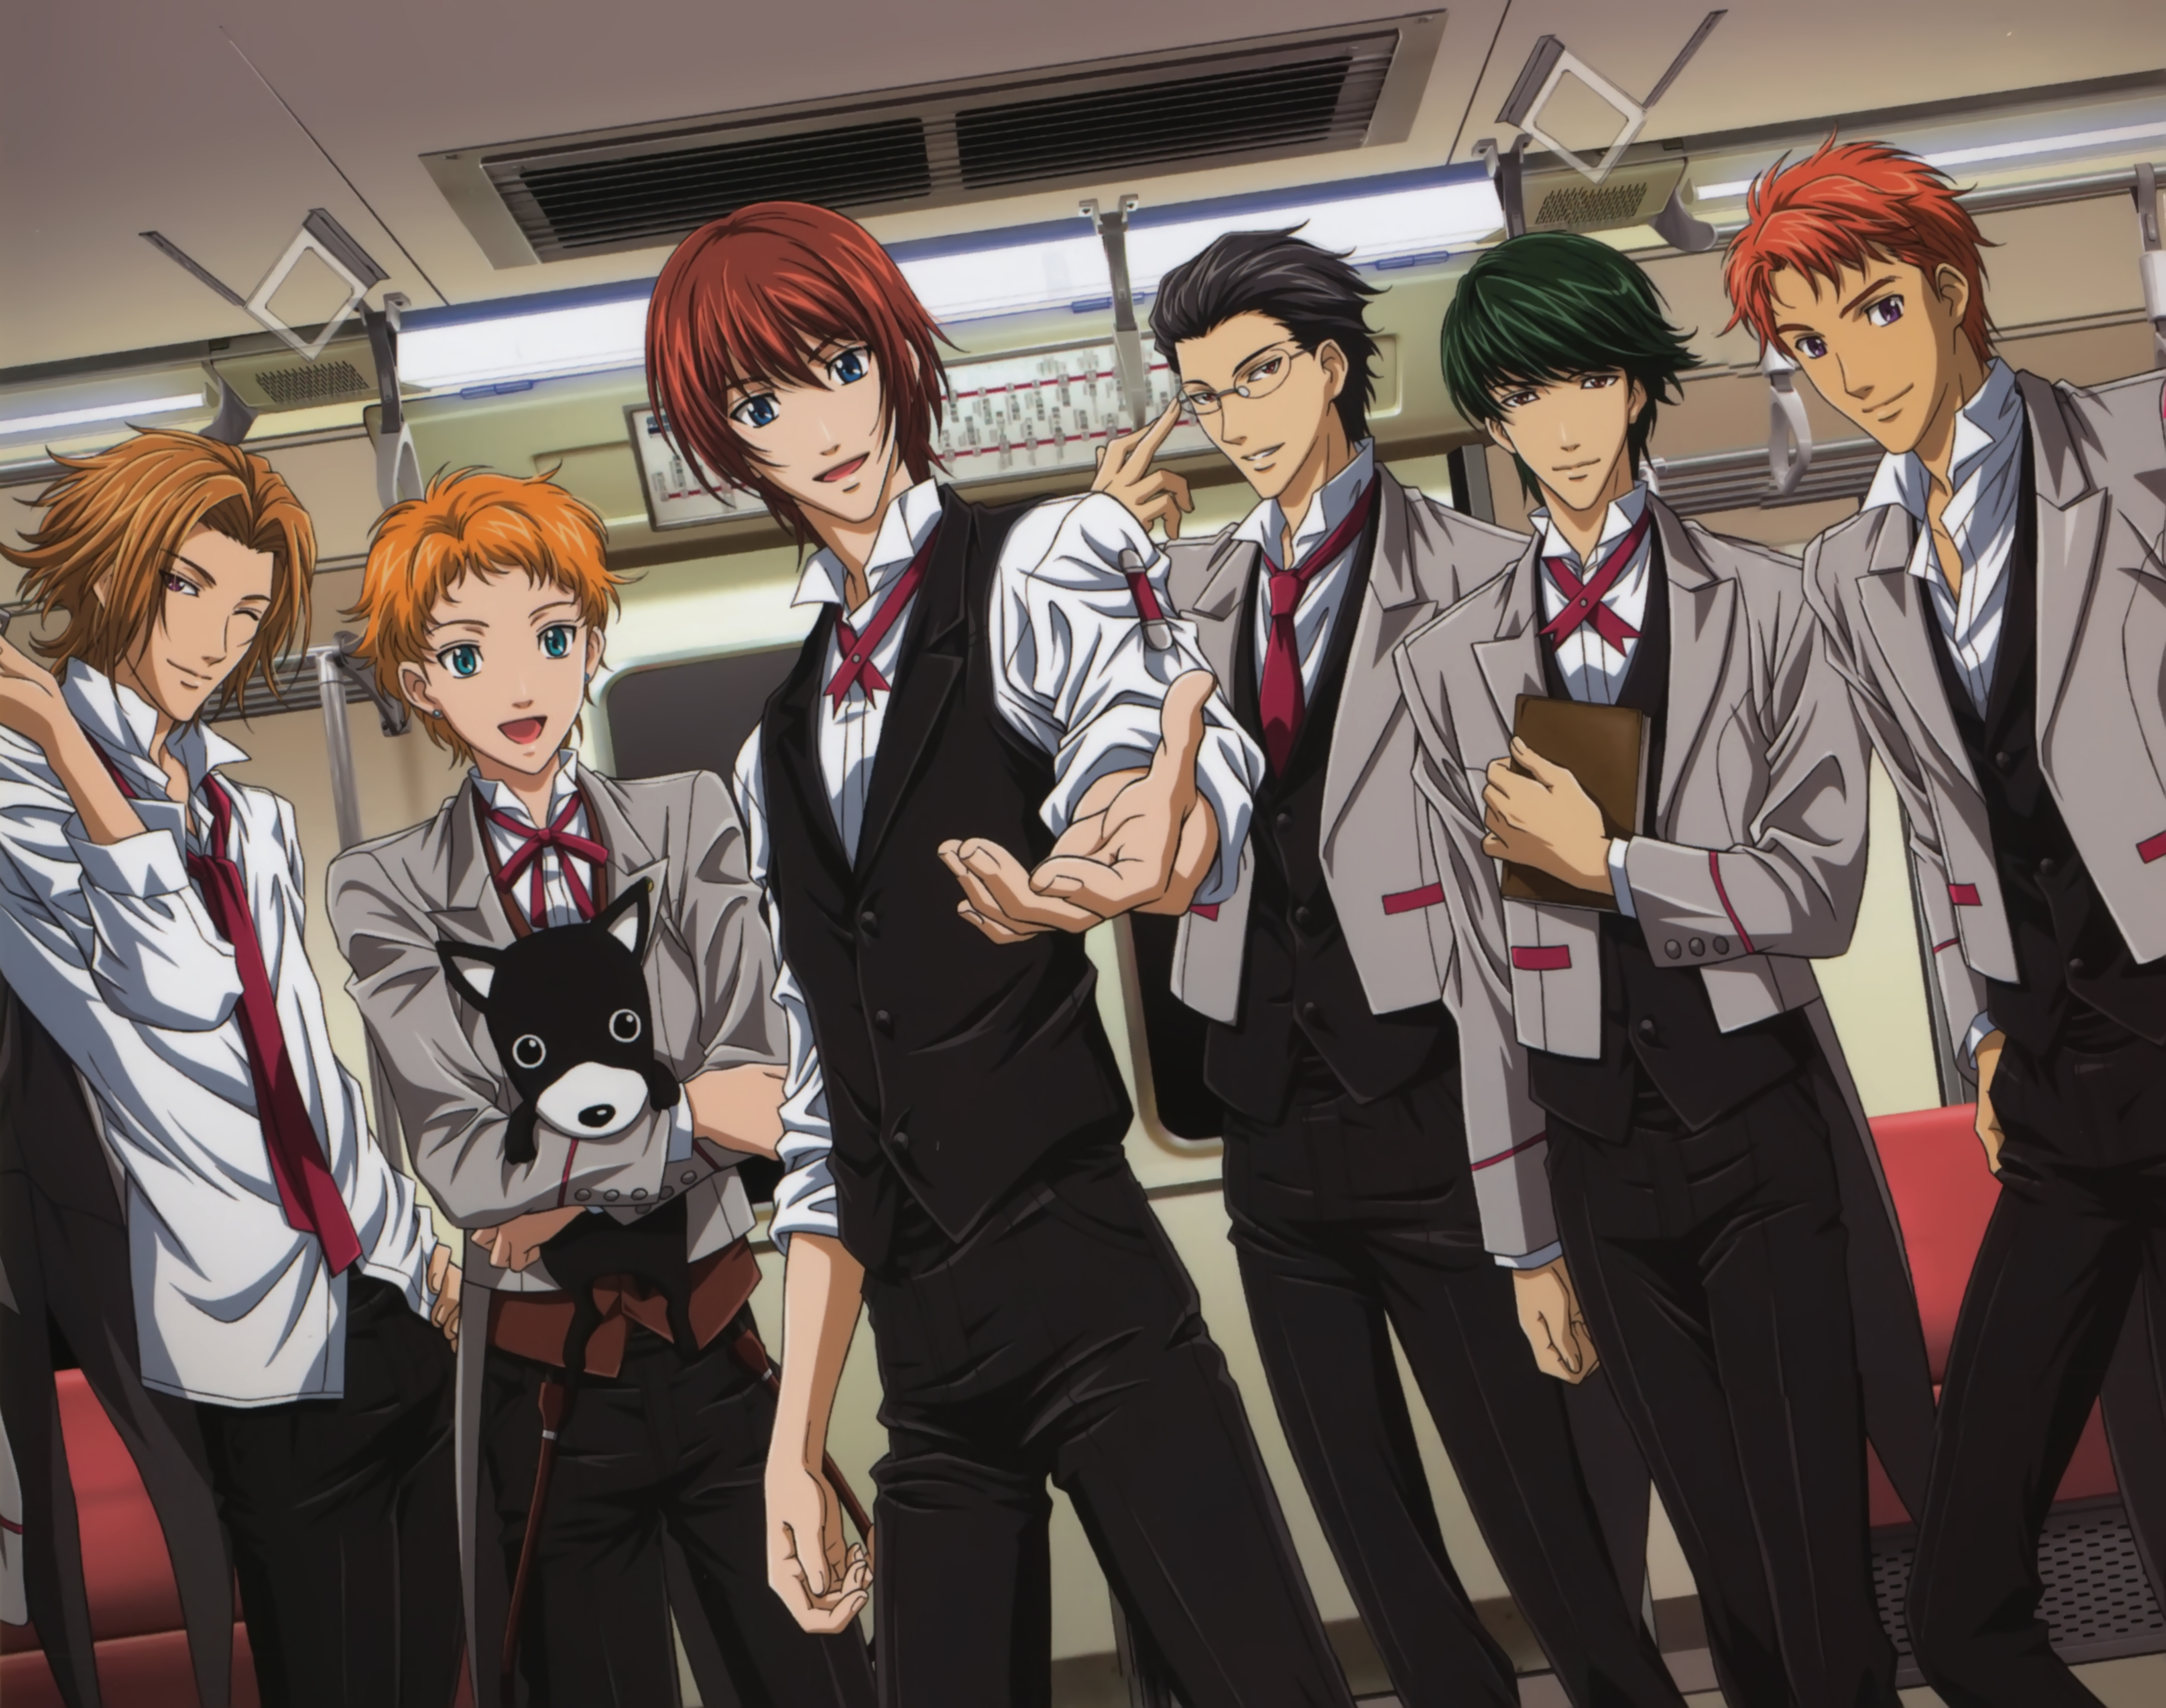 Watch miracle train episode 1 english dubbed